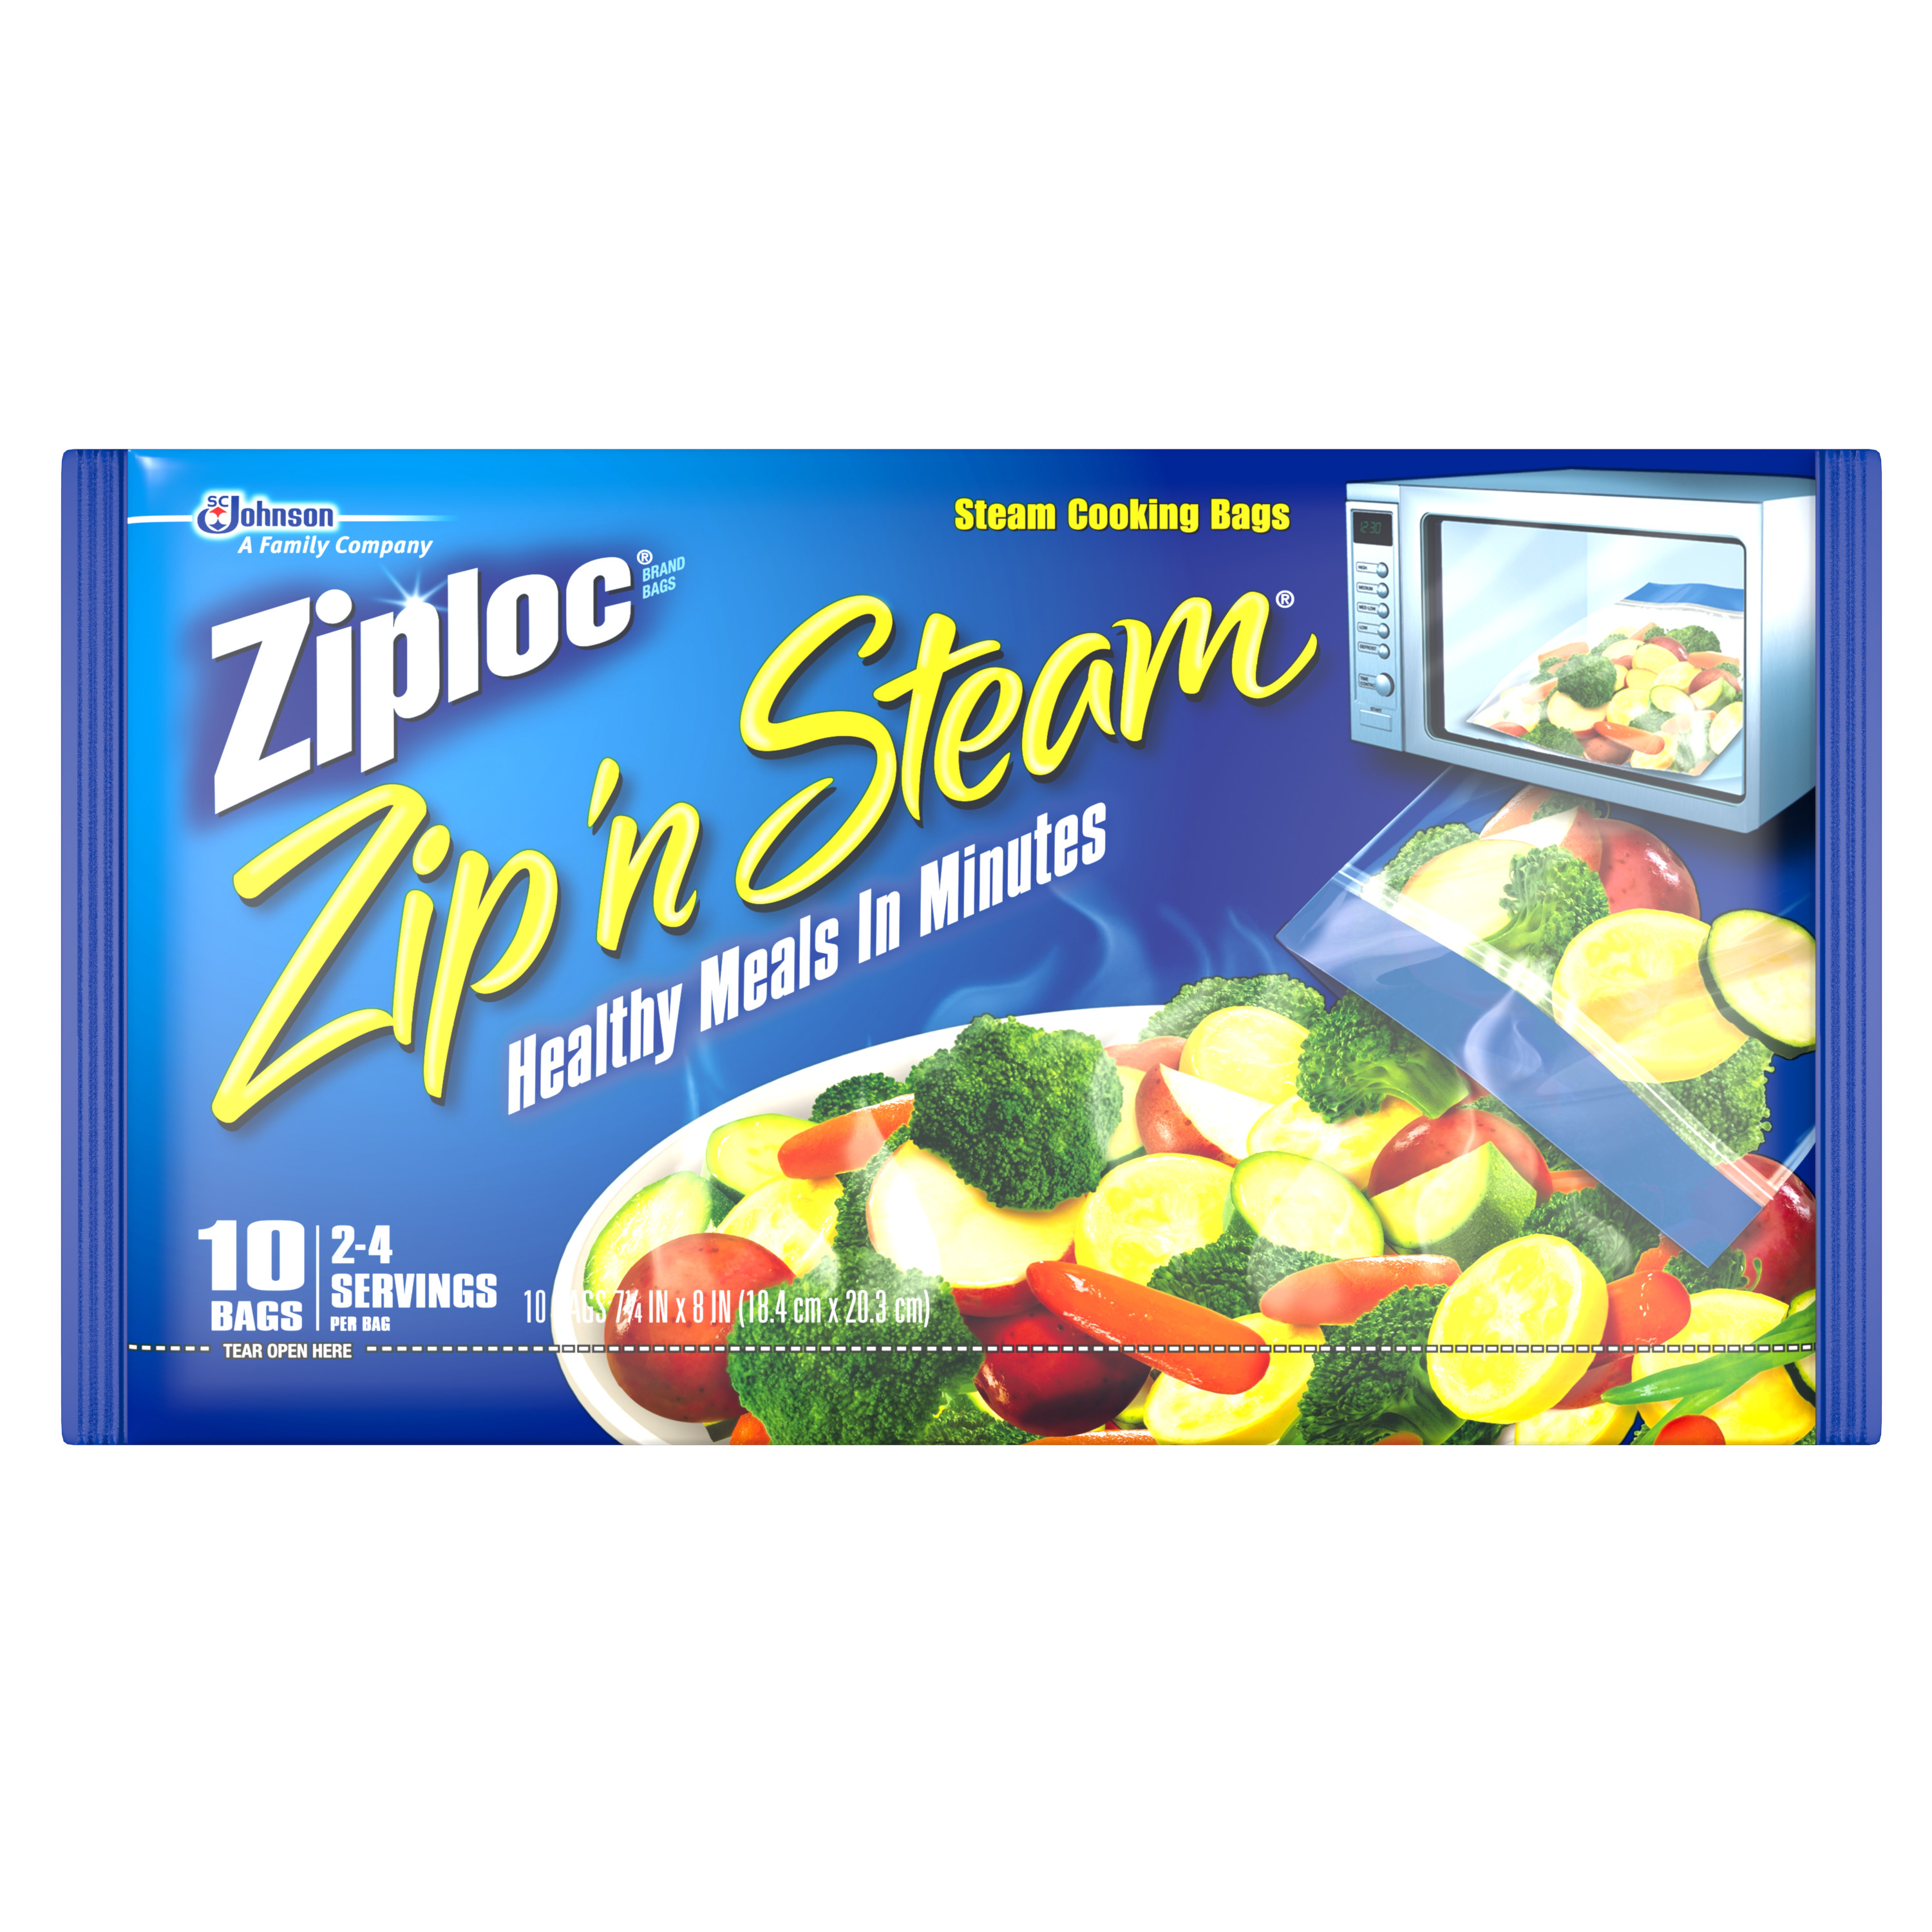 Ziploc Pinch and Seal Zip'n Steam Microwave Cooking Bags, Medium, 10 Ct